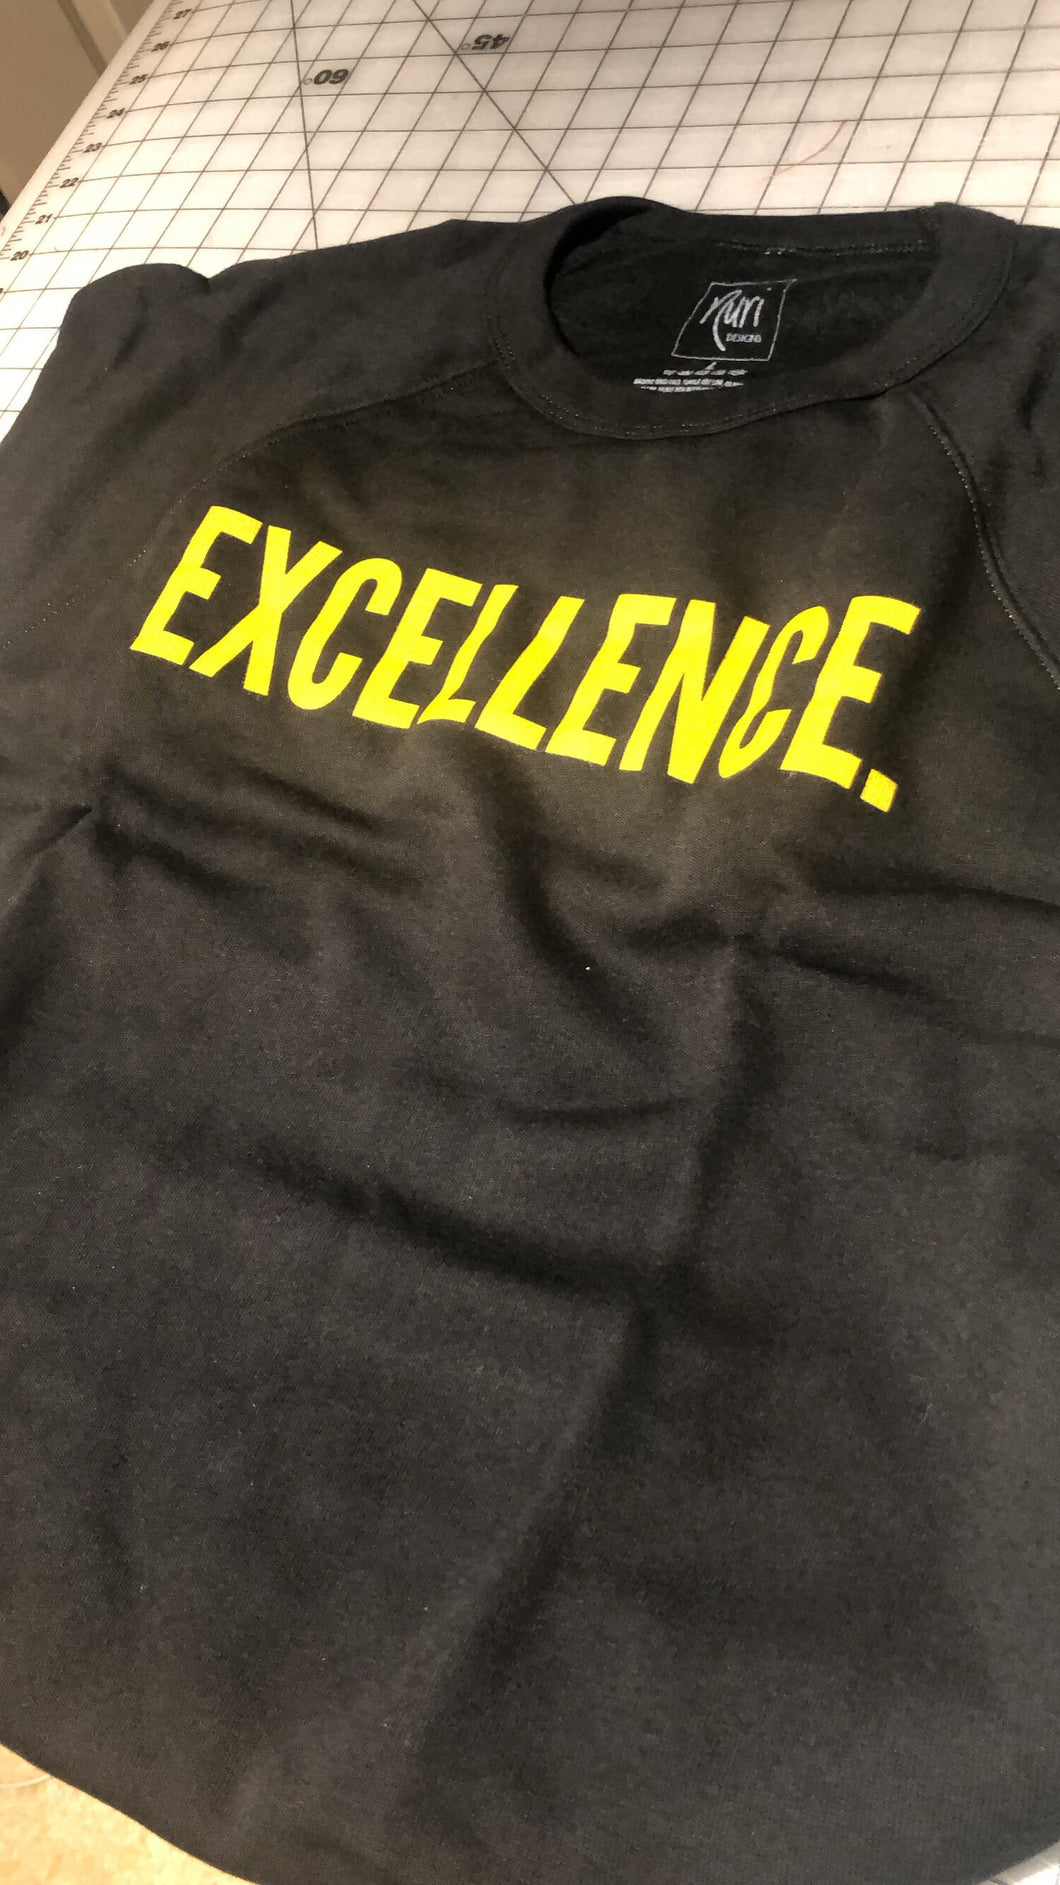 EXCELLENCE. Sweatshirt (LIMITED)